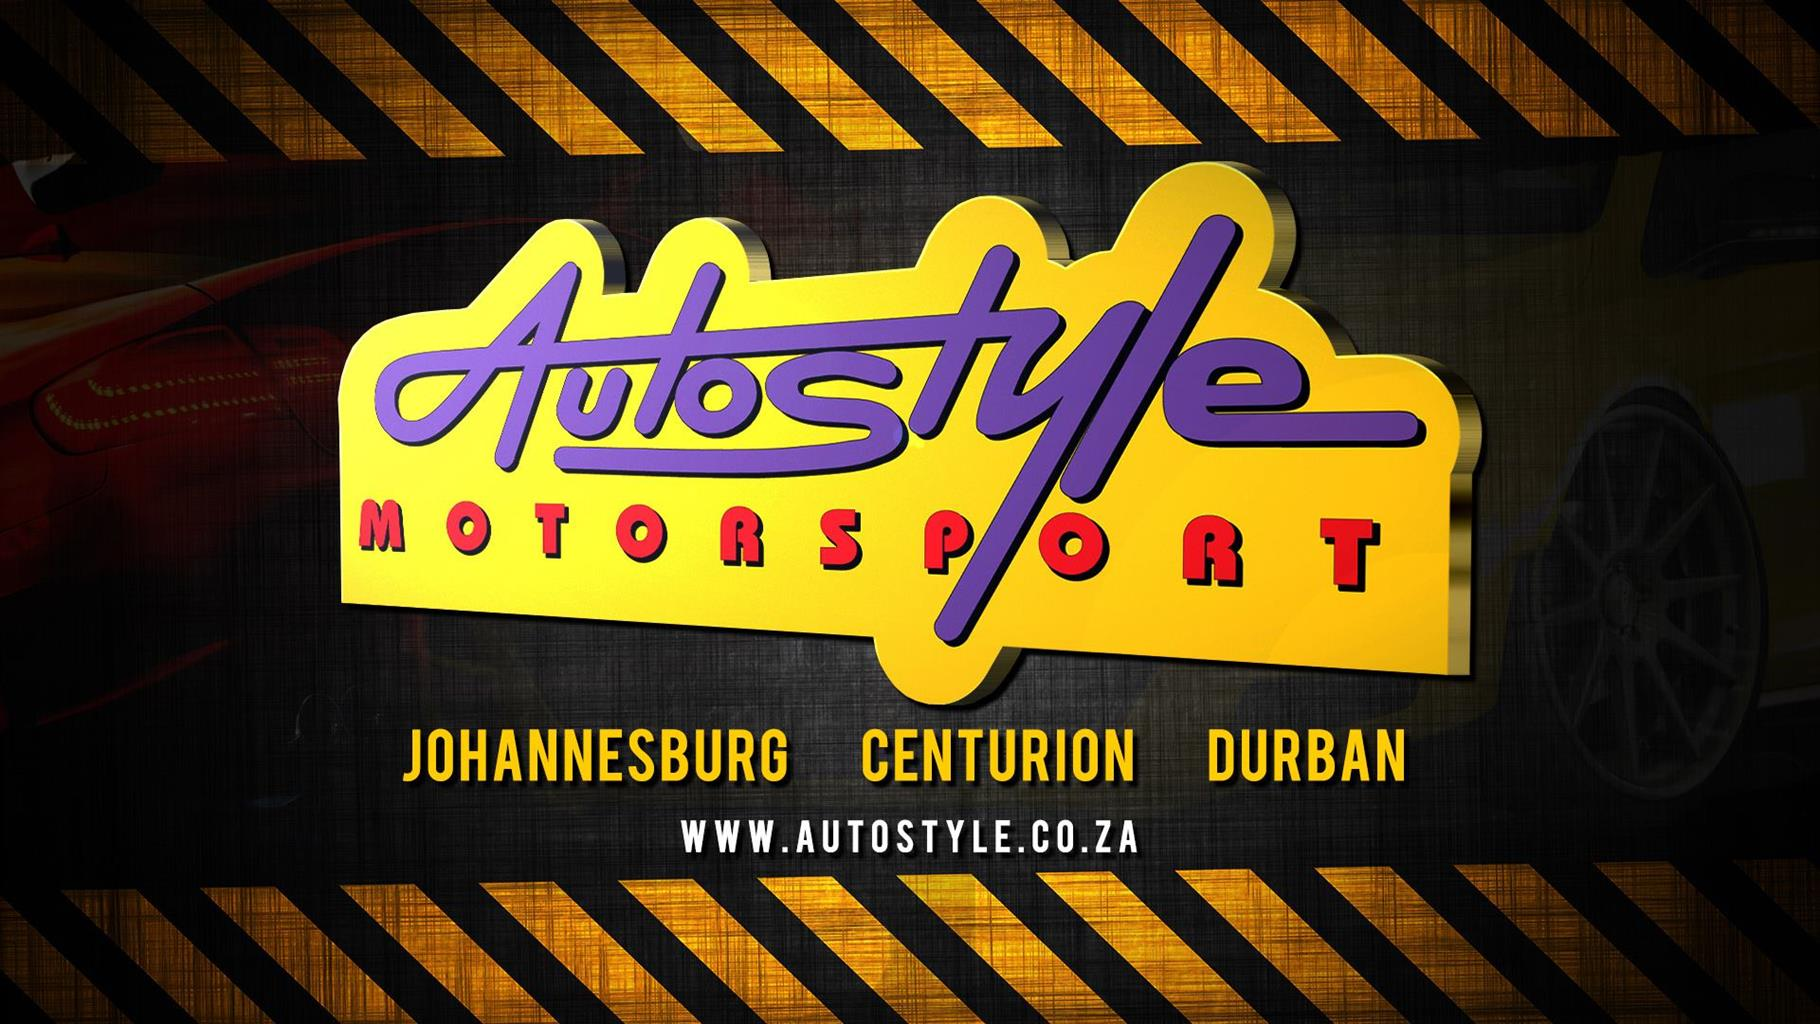 Find Autostyle's adverts listed on Junk Mail